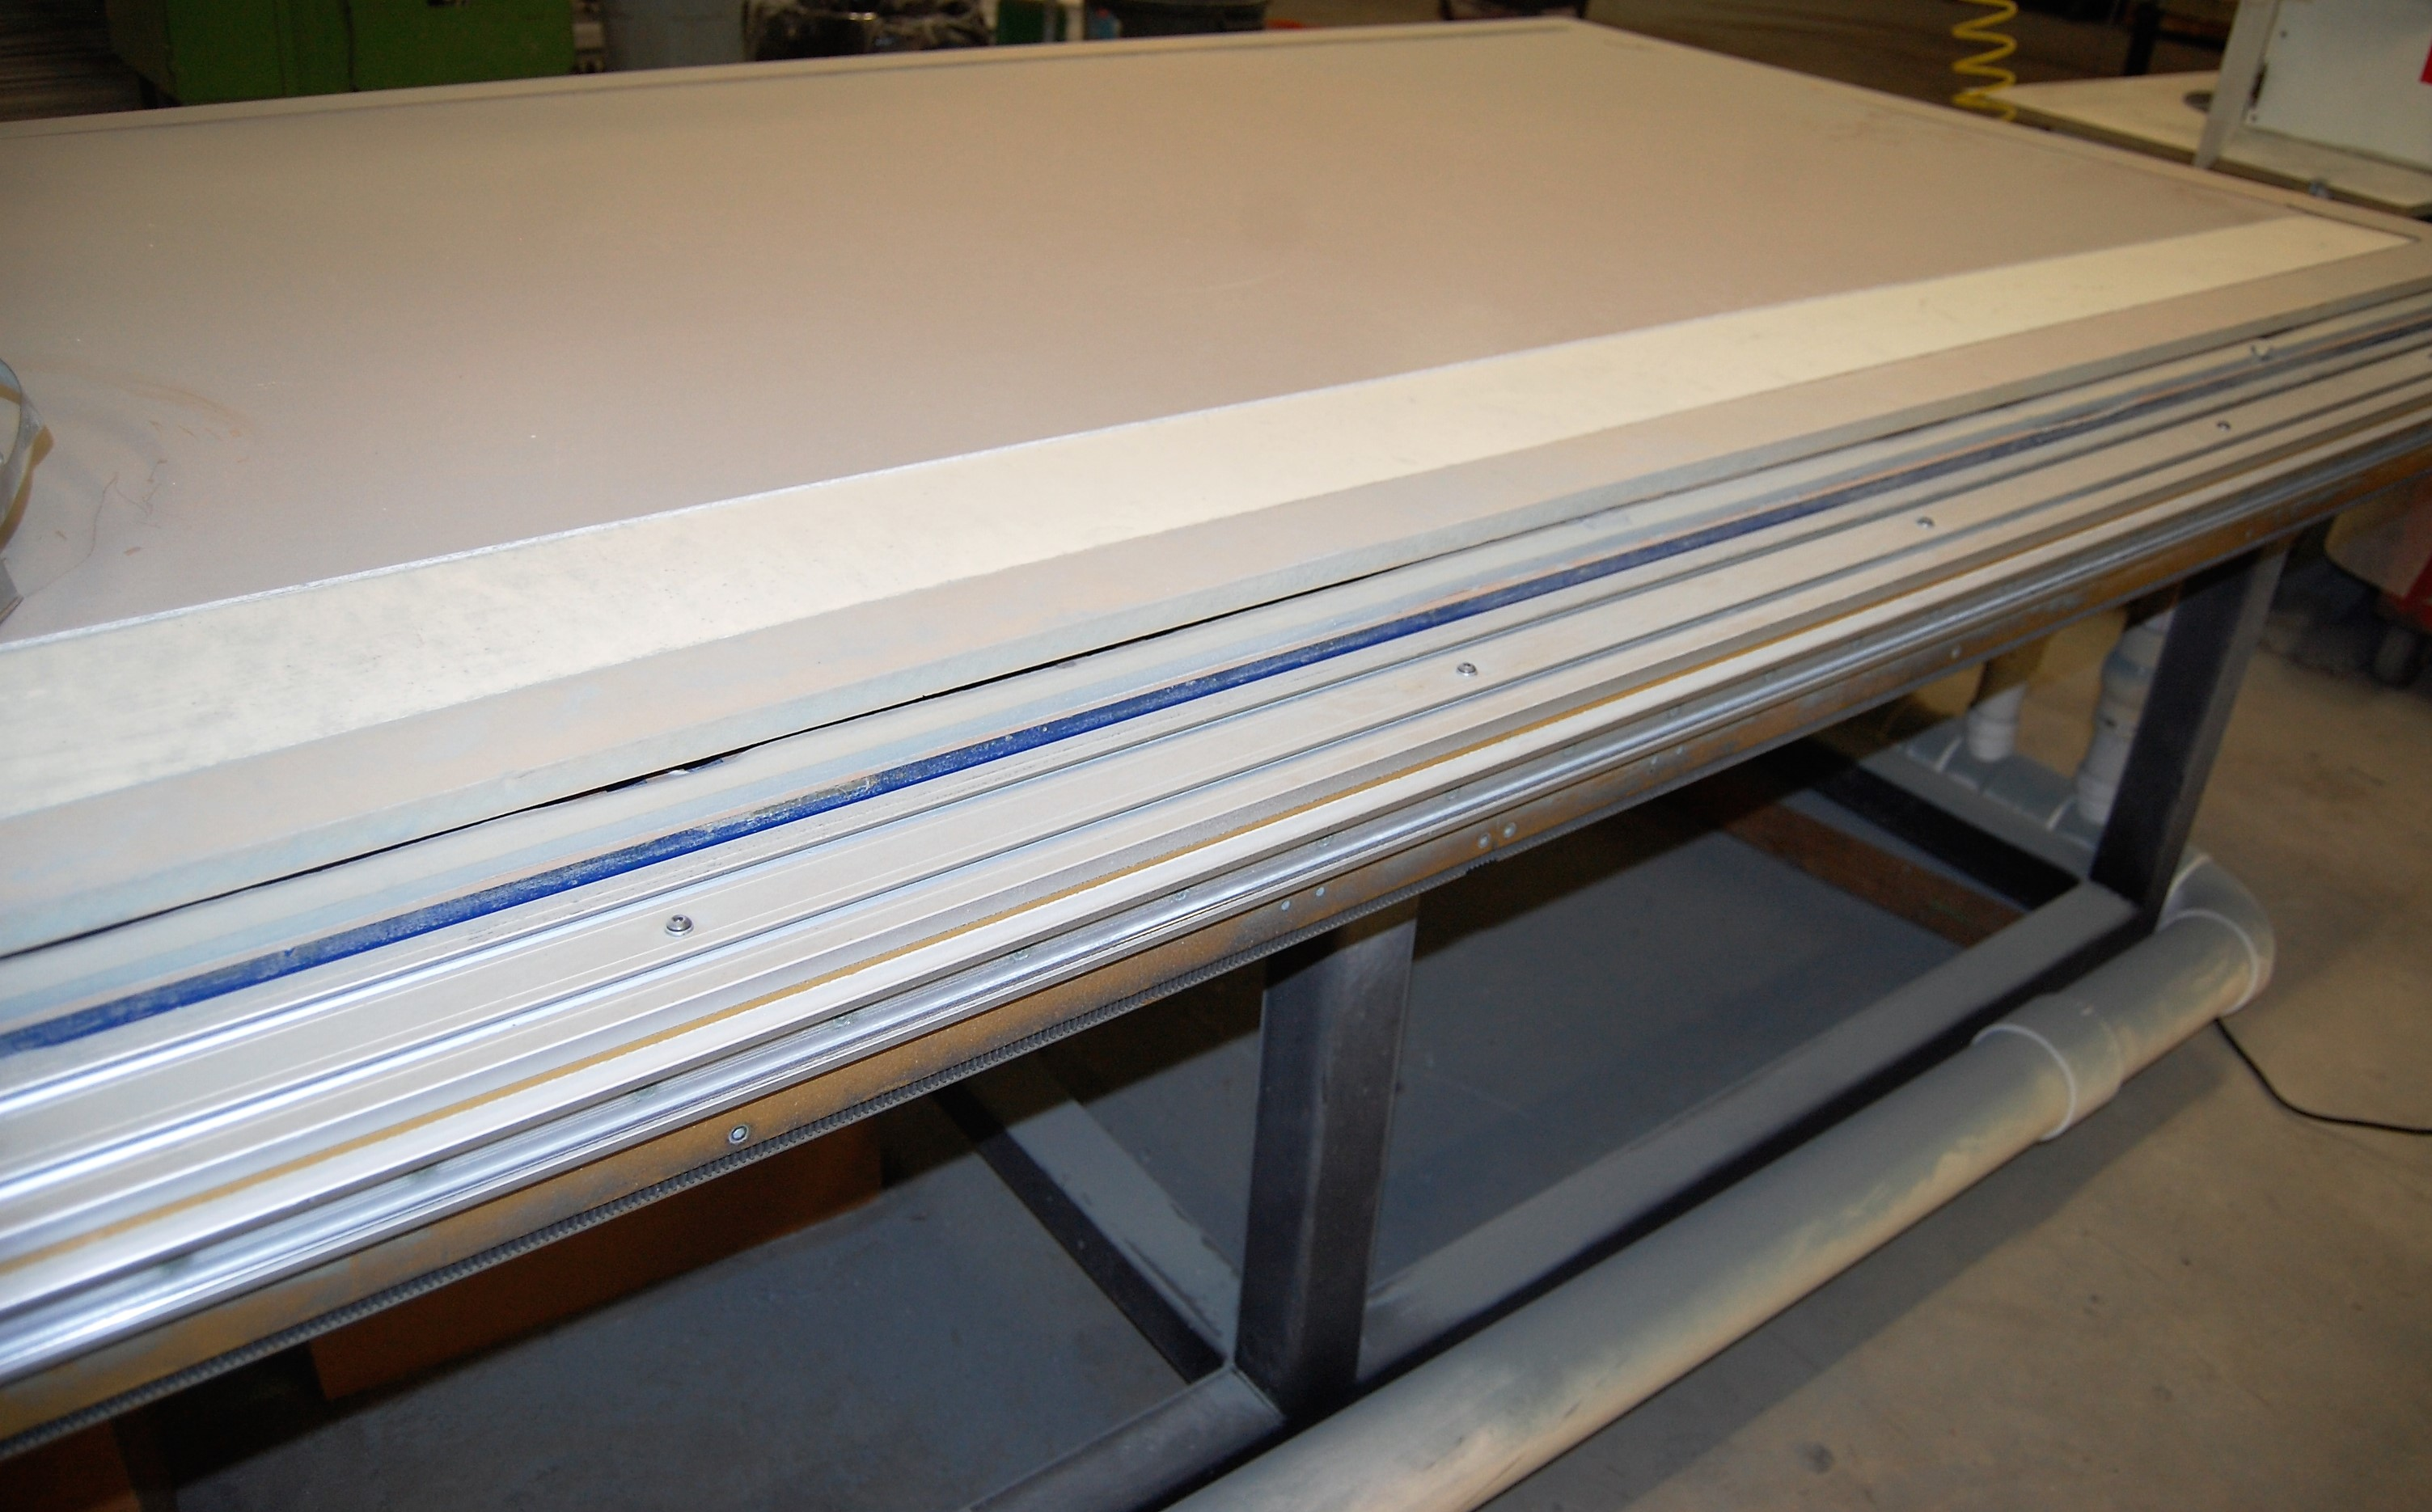 Lot 15 - 5' X 10' ACCU-CUT MDL. 510 CNC ROUTER, 5.5HP HEAD, 12,555 - 20,000 RPM, VACUUM TABLE, 10HP DUSTEK